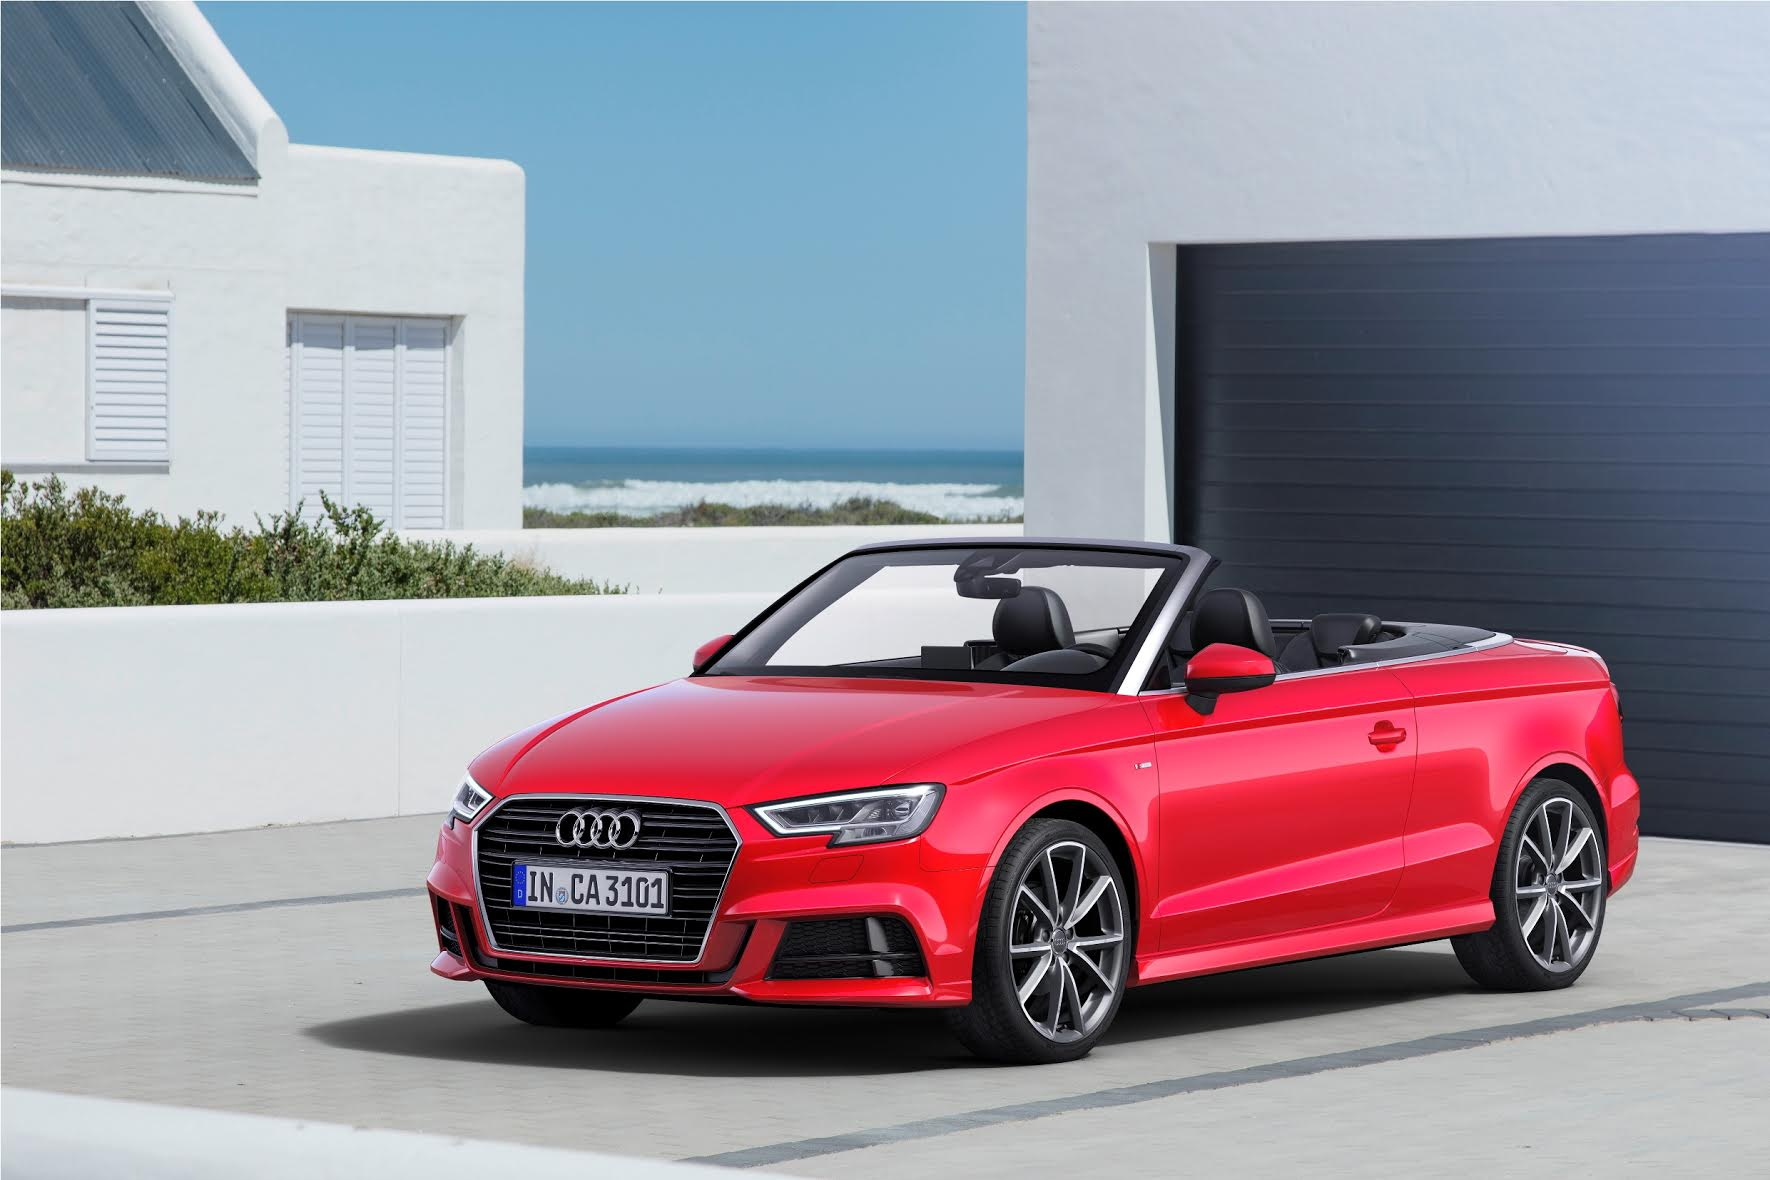 2017 audi a3 cabriolet india price lakh specifications features. Black Bedroom Furniture Sets. Home Design Ideas